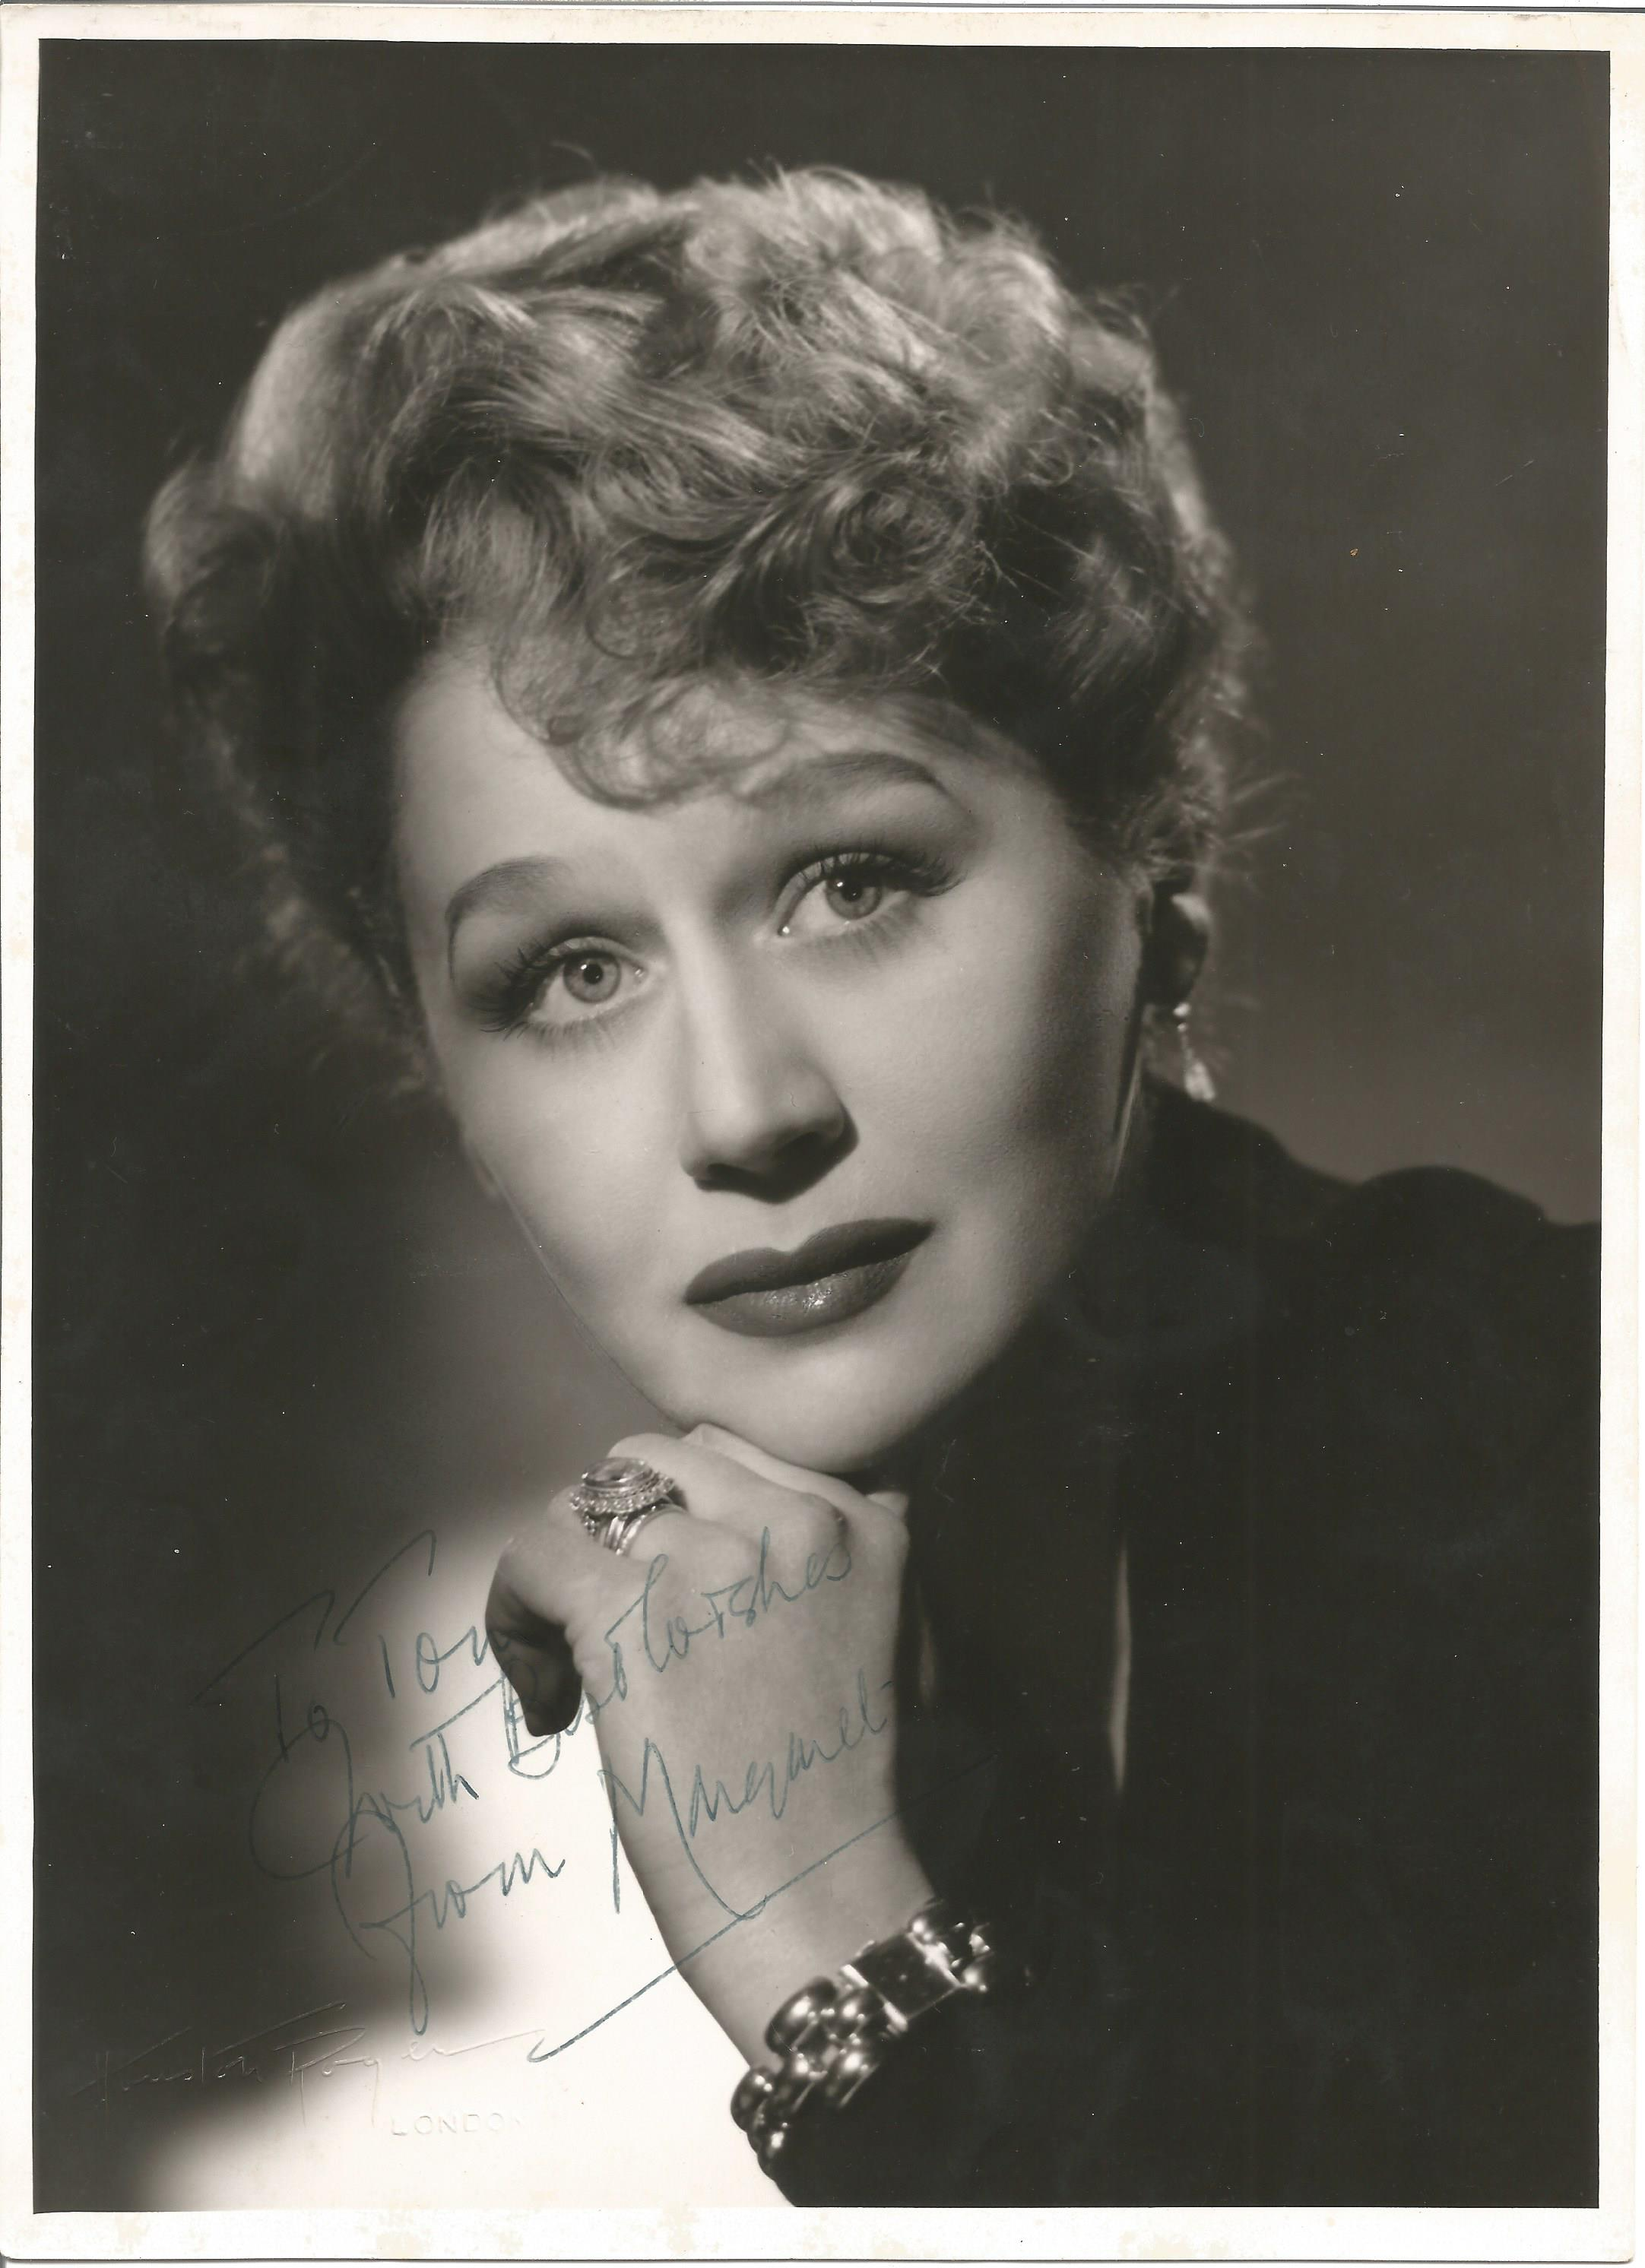 Actress Margaret Leighton vintage black and white 10x7 photo, dedicated to Tom and signed